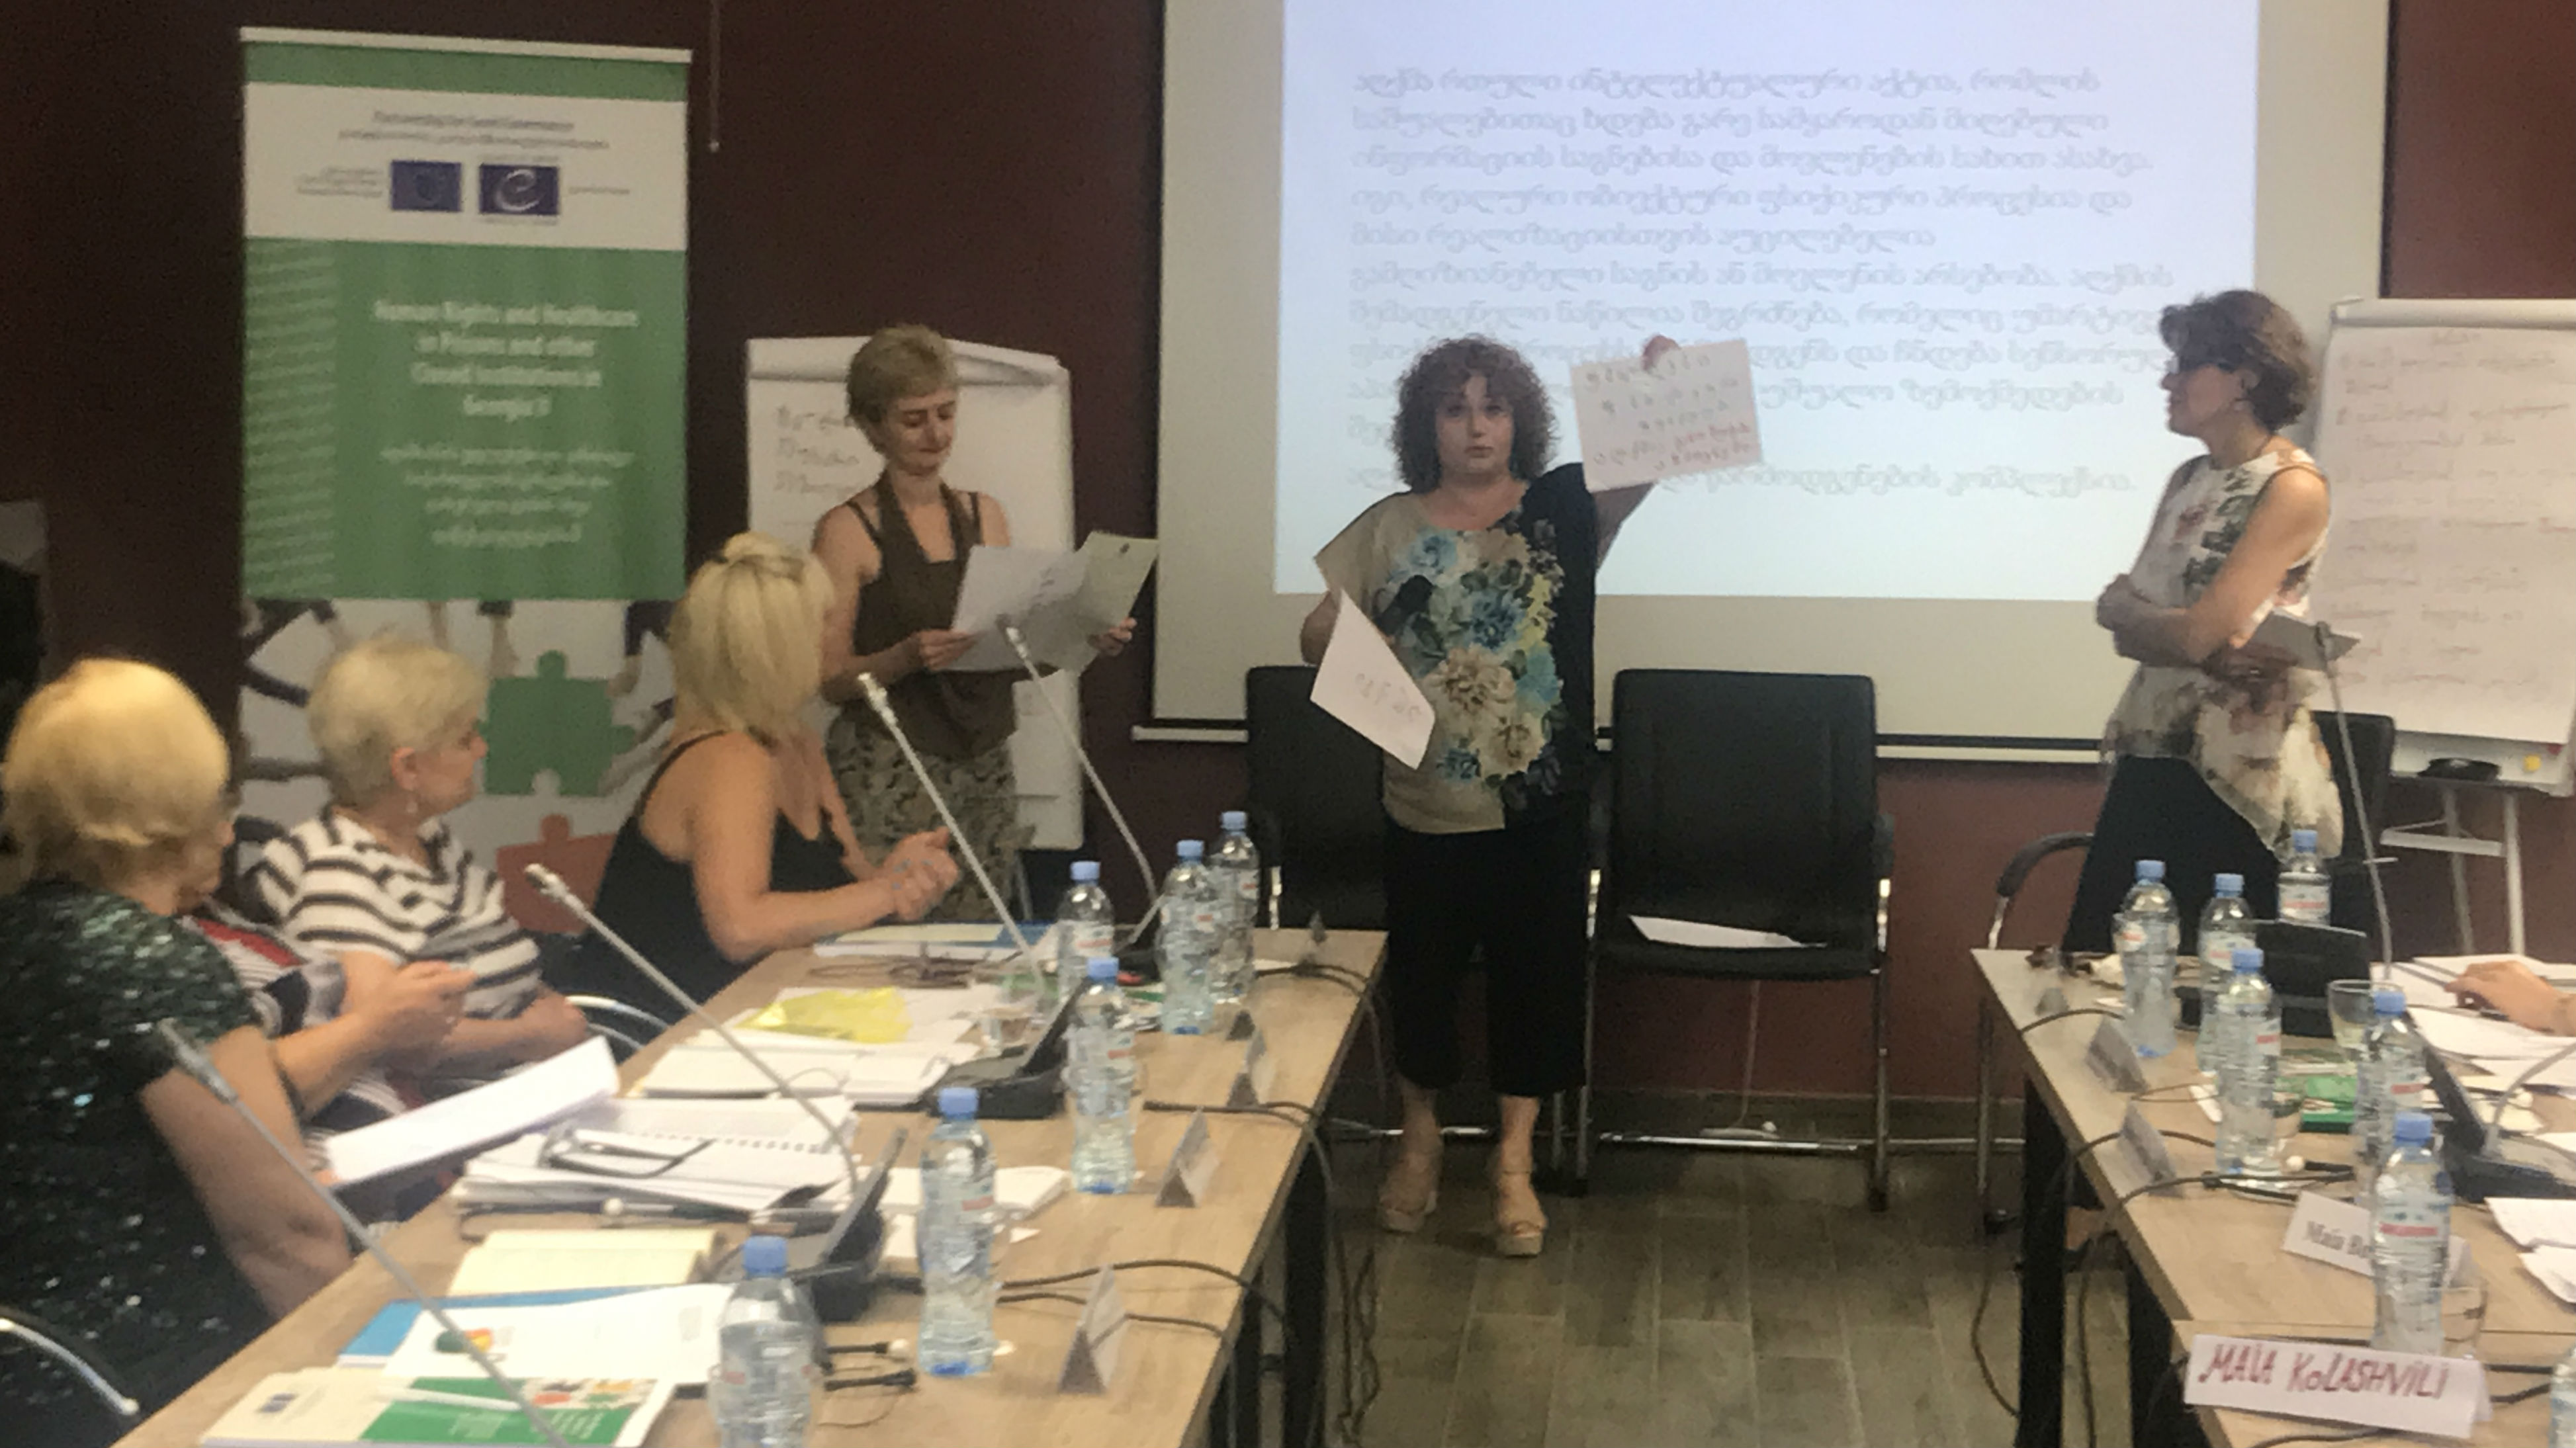 Press release: First Training Programme for Psychiatric Nurses in Georgia